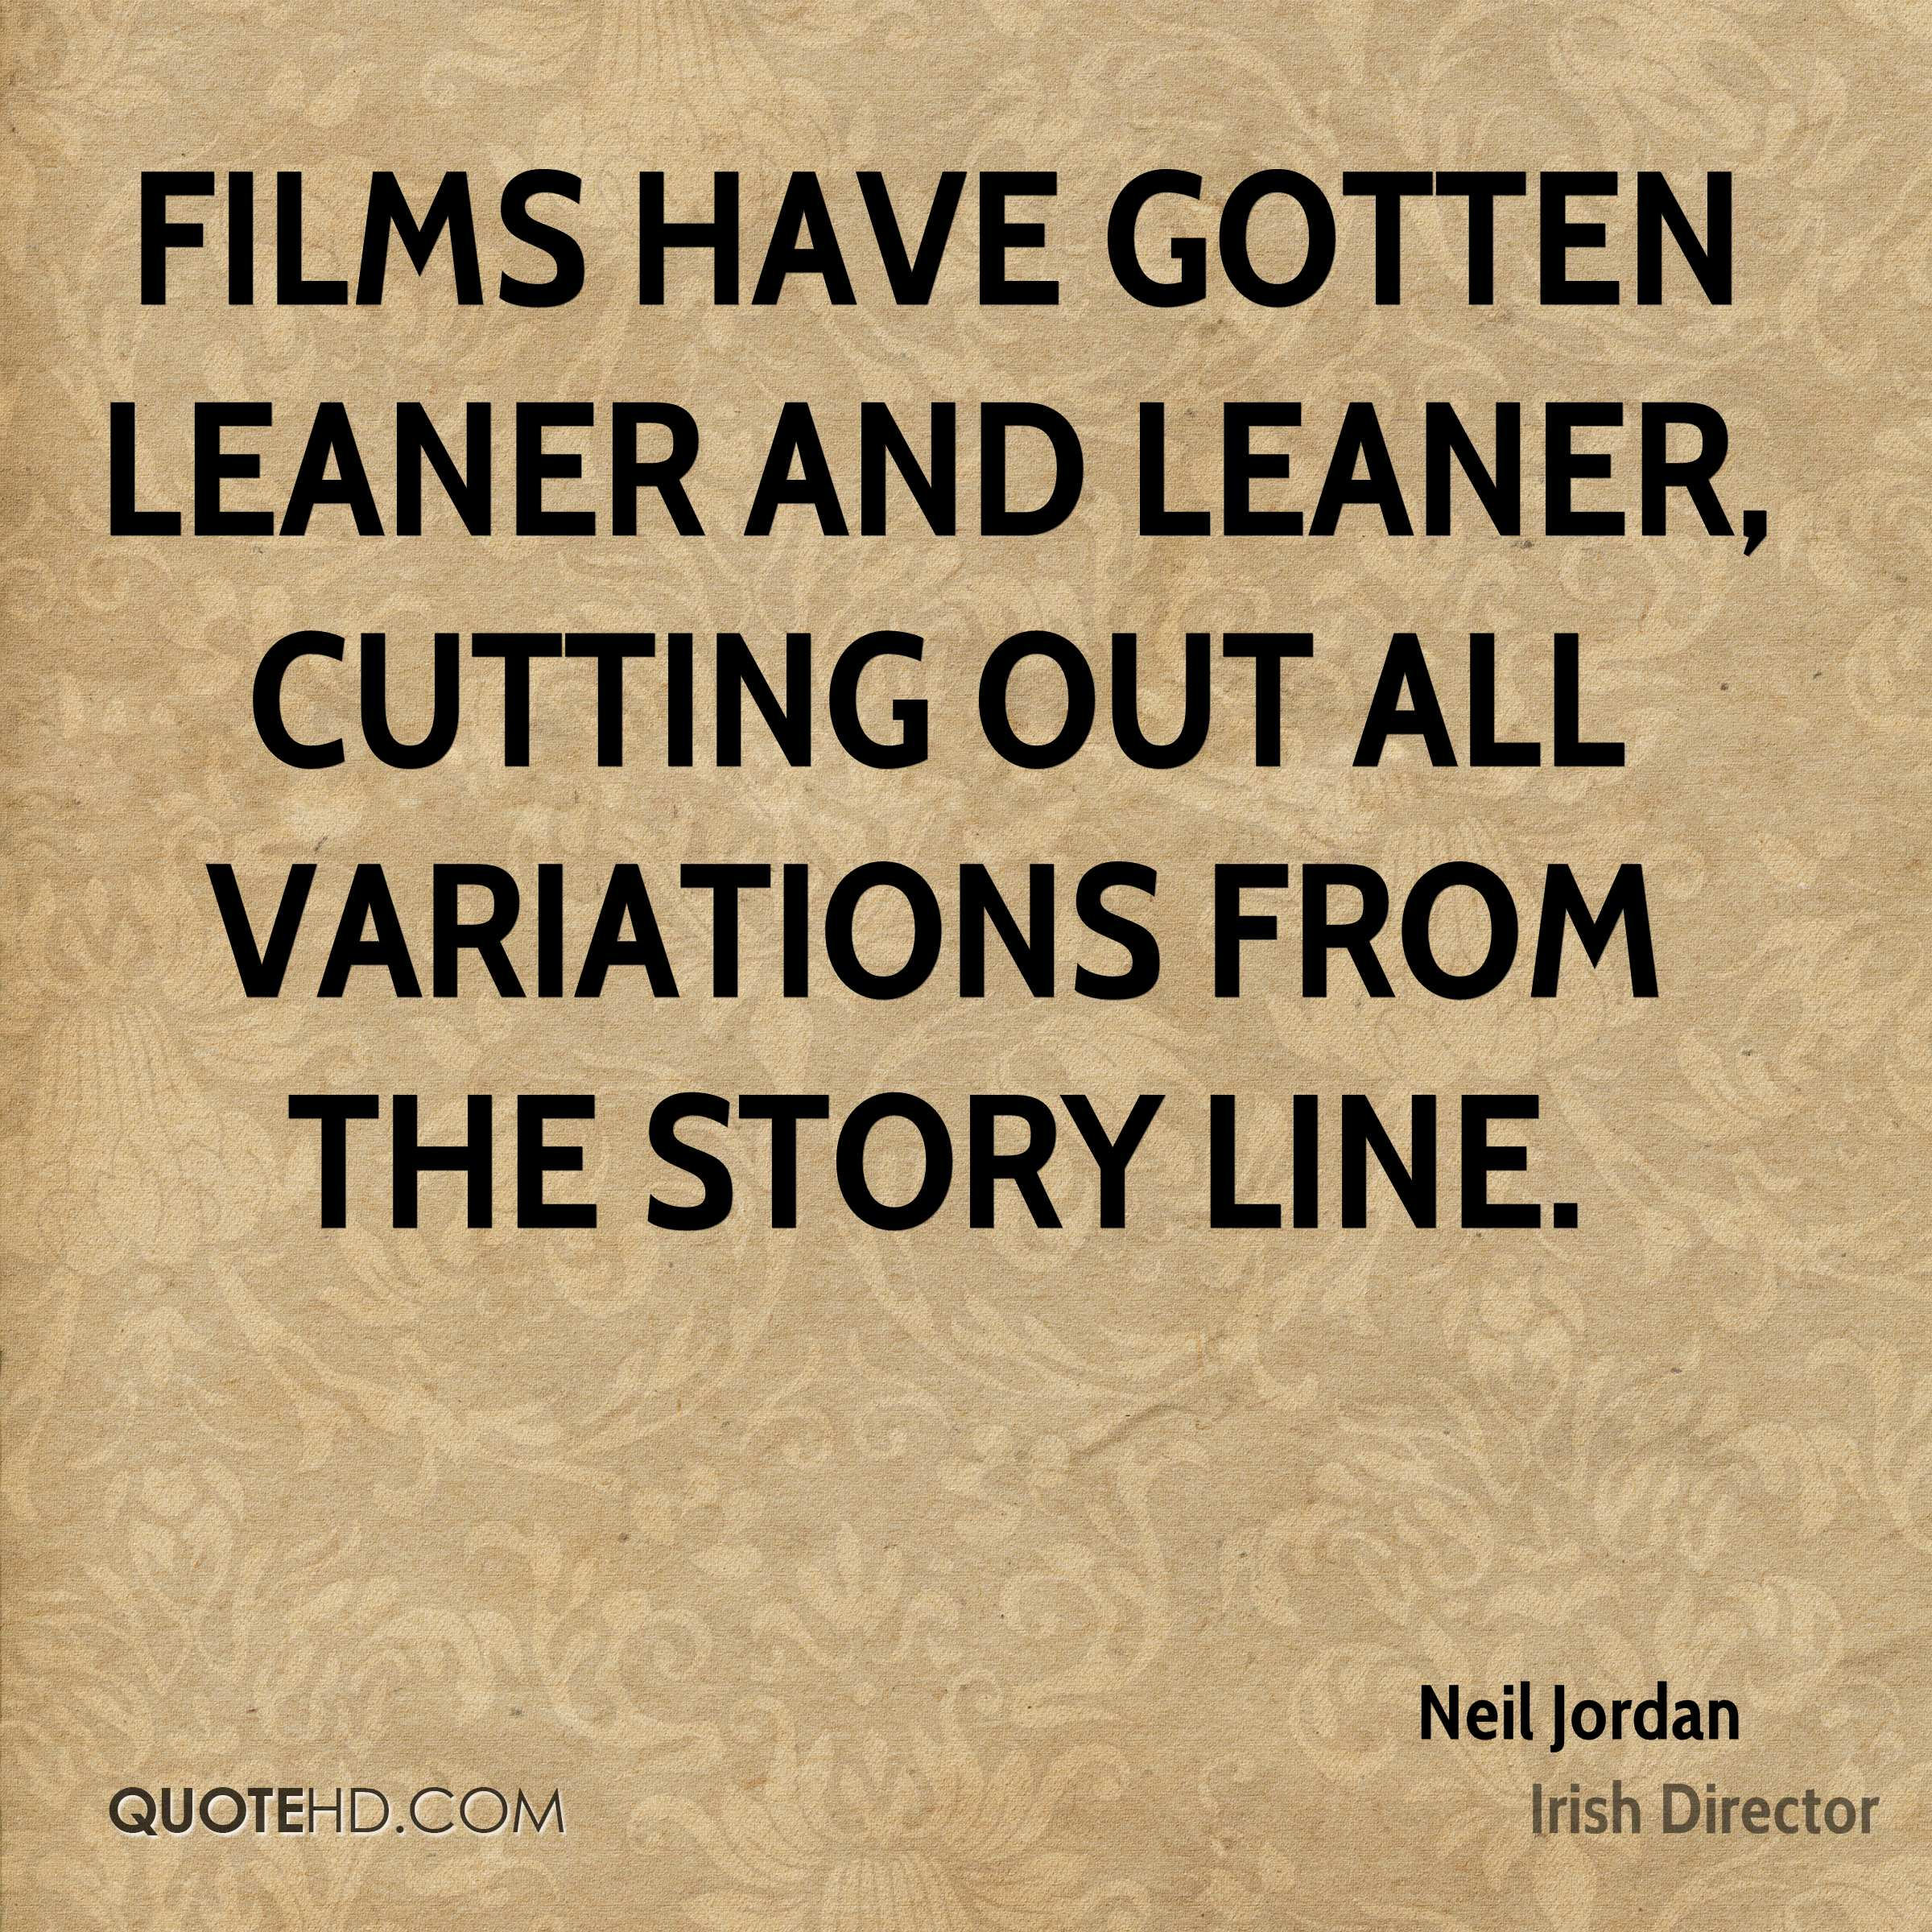 Films have gotten leaner and leaner, cutting out all variations from the story line.